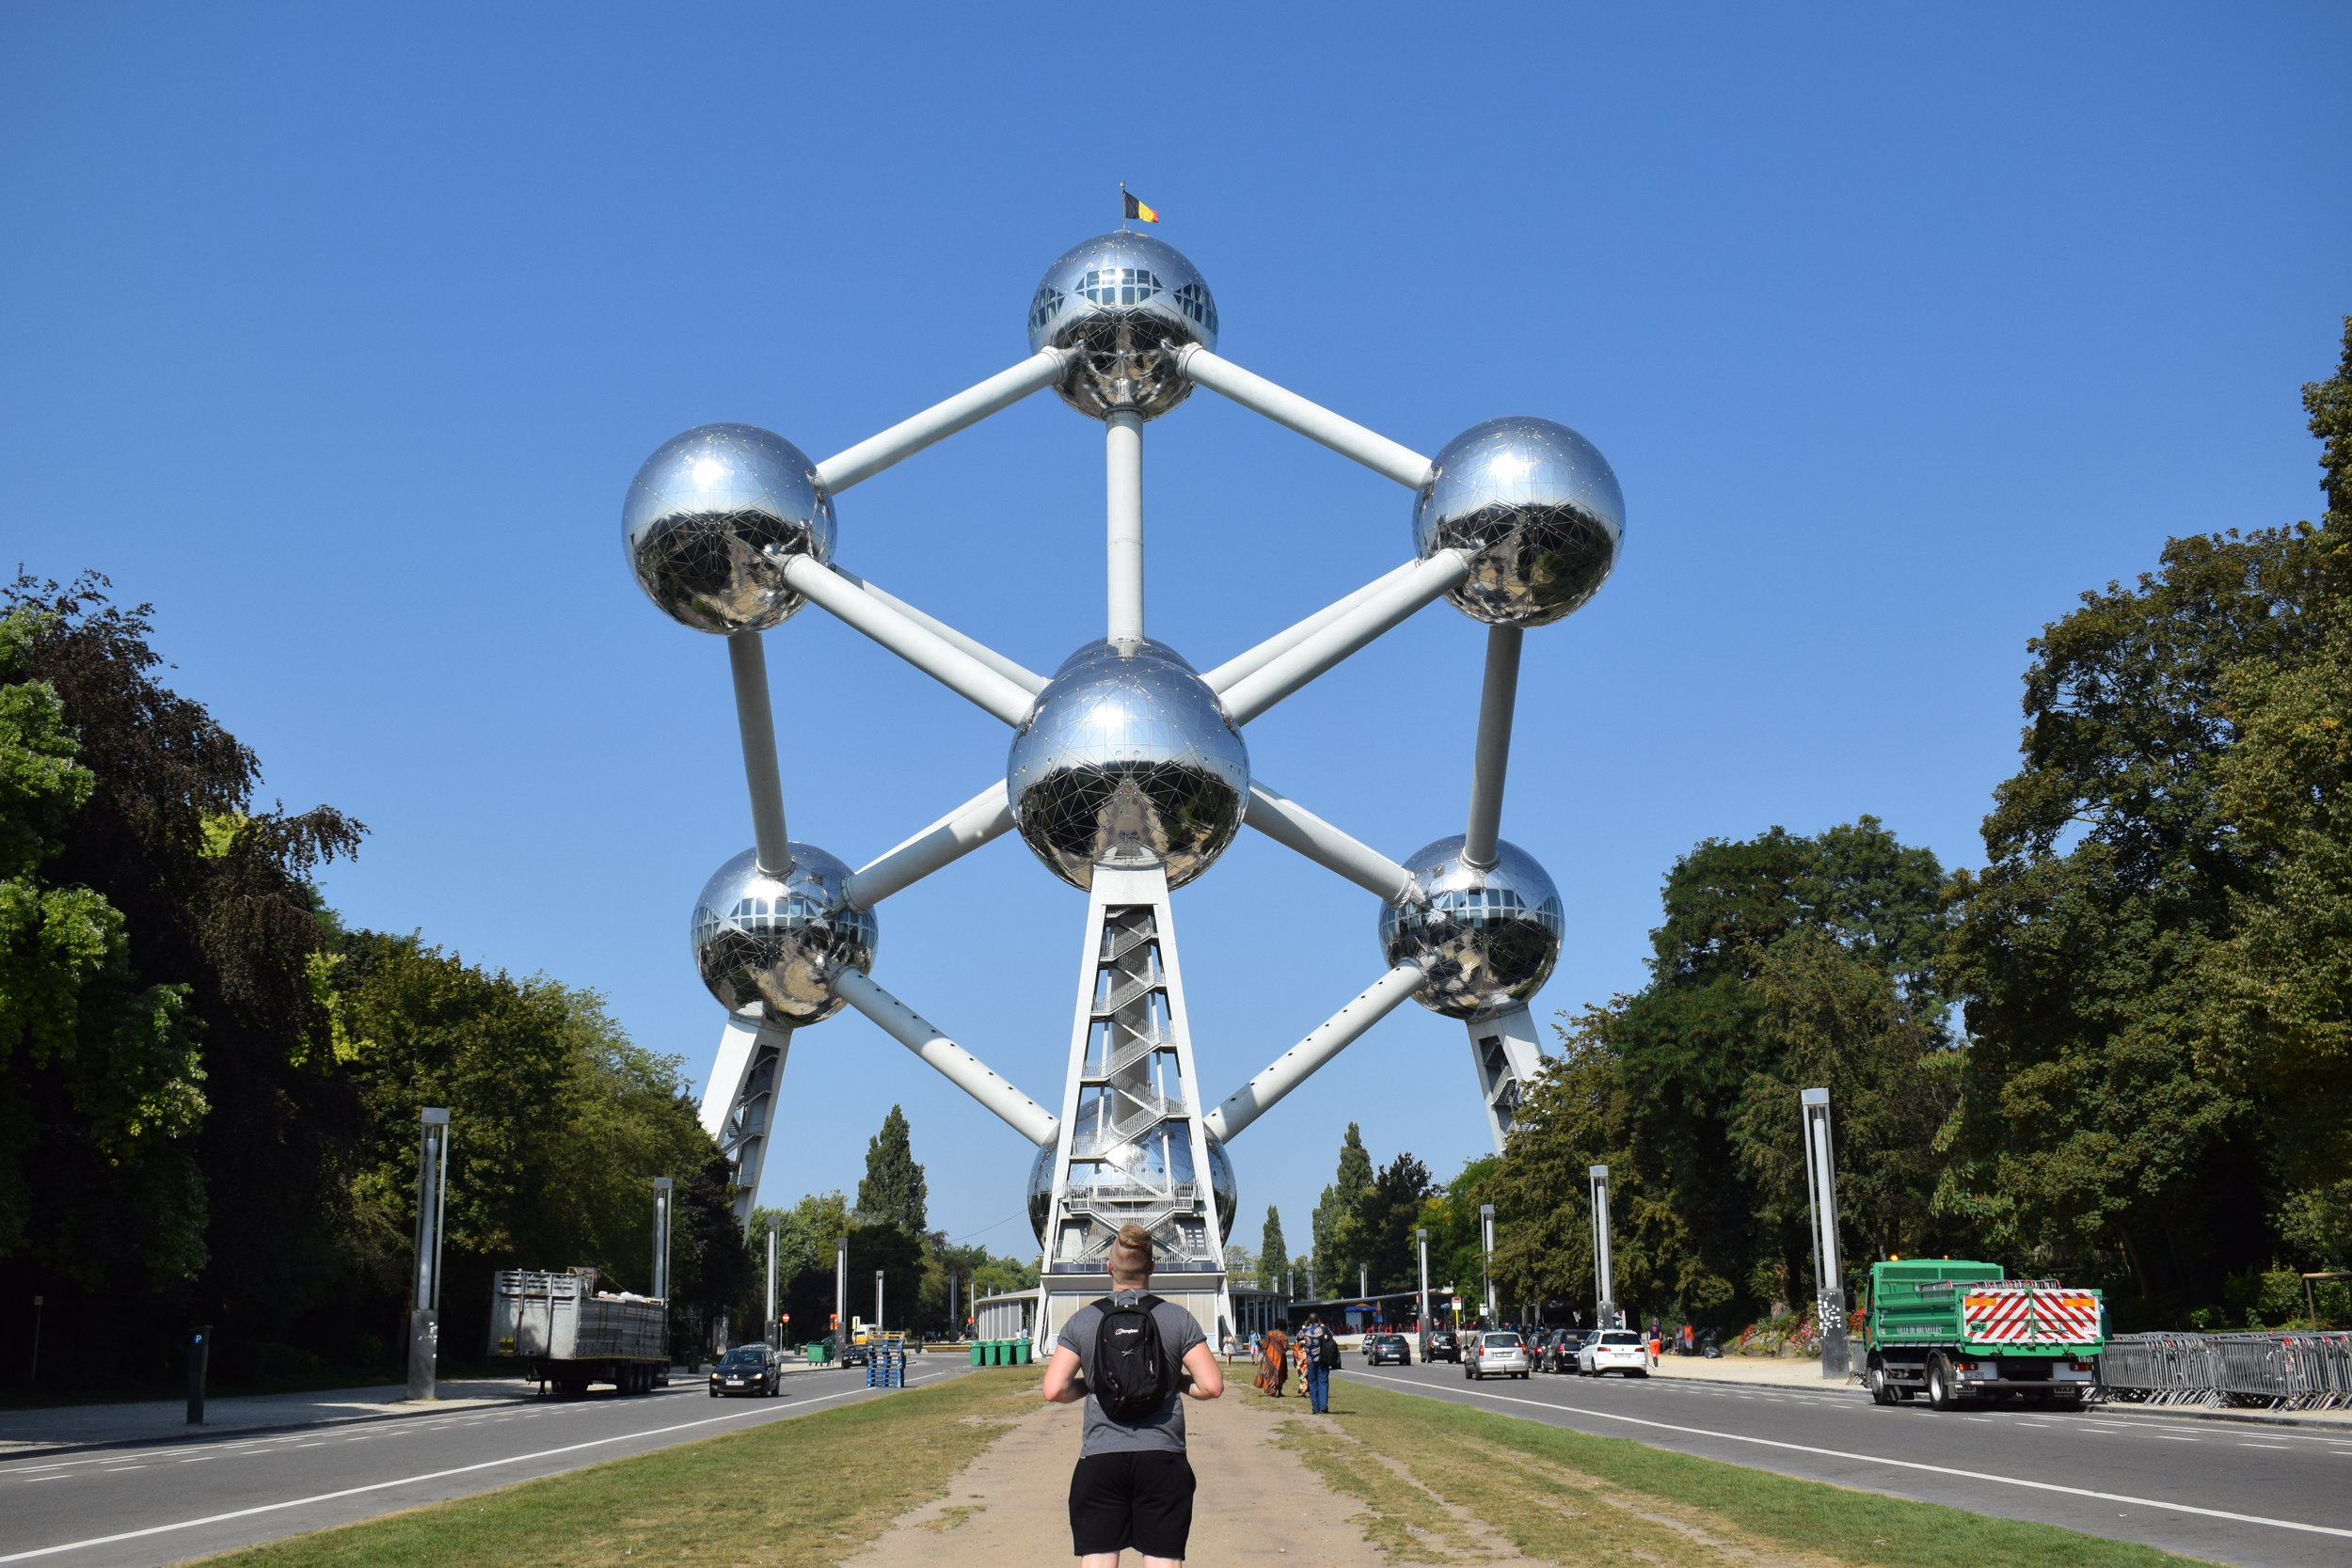 Looking out towards the Atomium in Brussels.